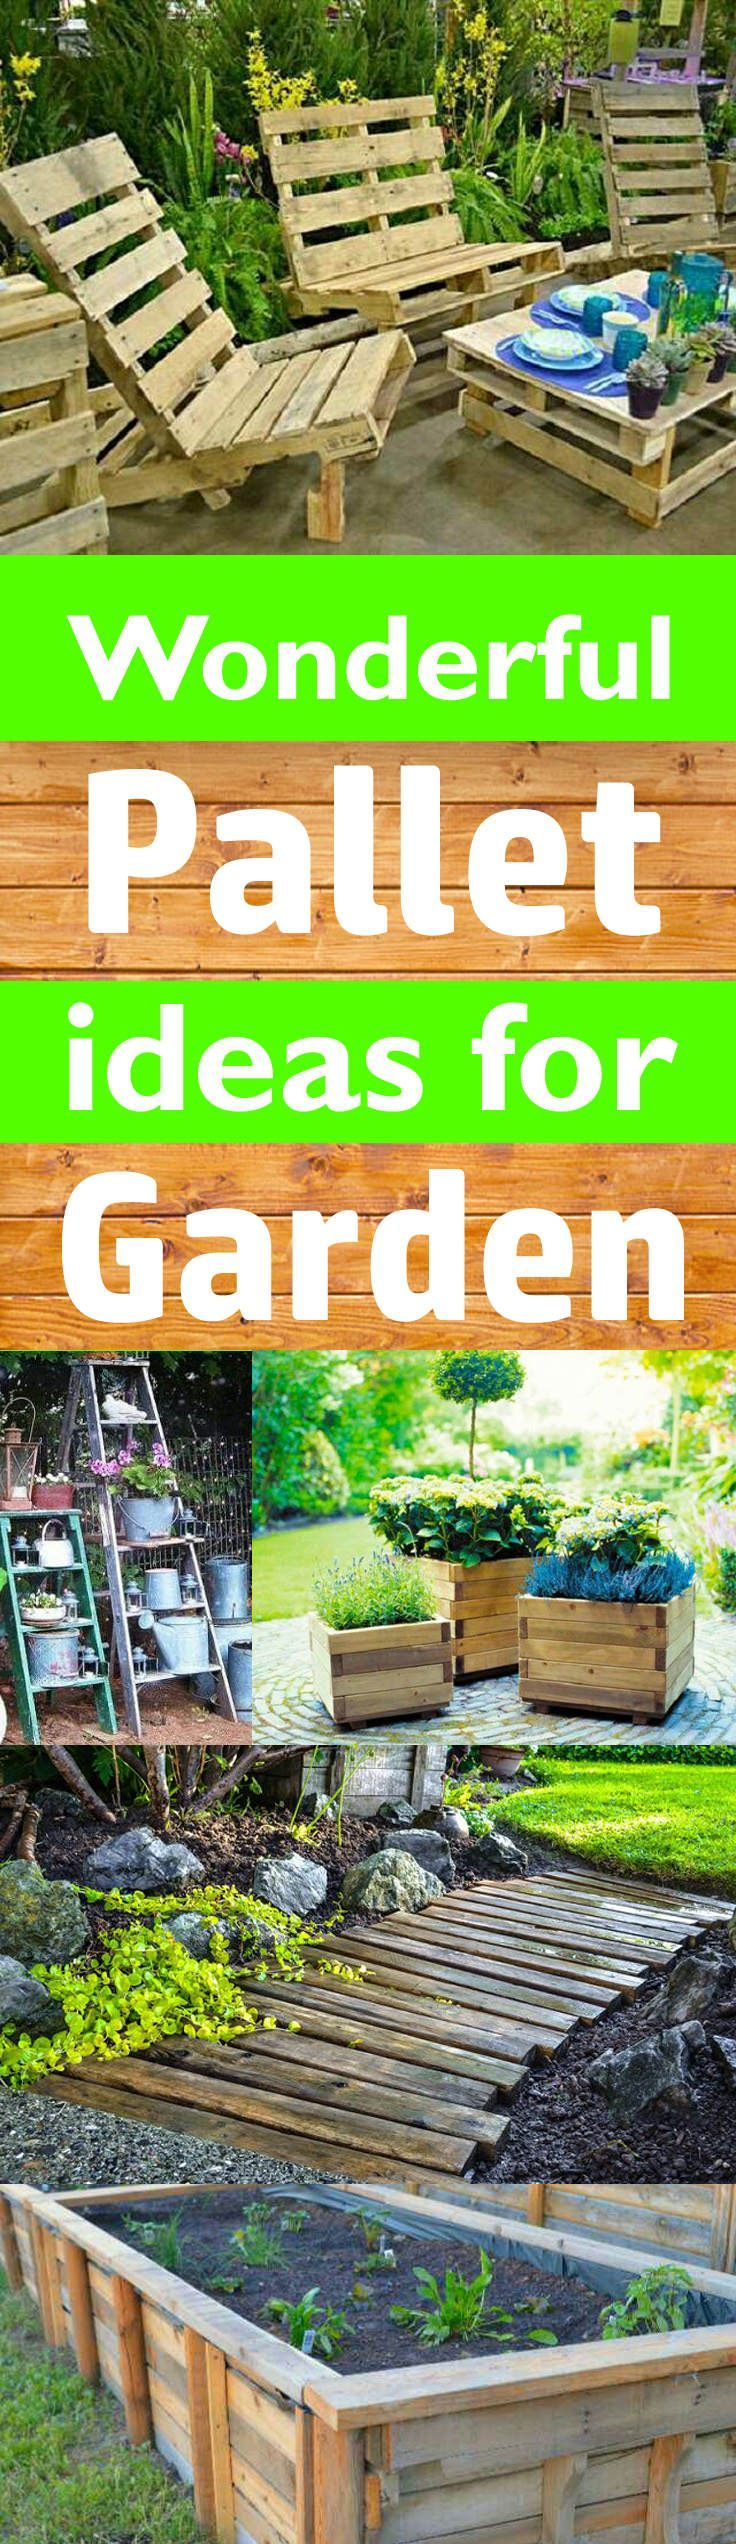 14 wonderful ideas to use pallets in garden design